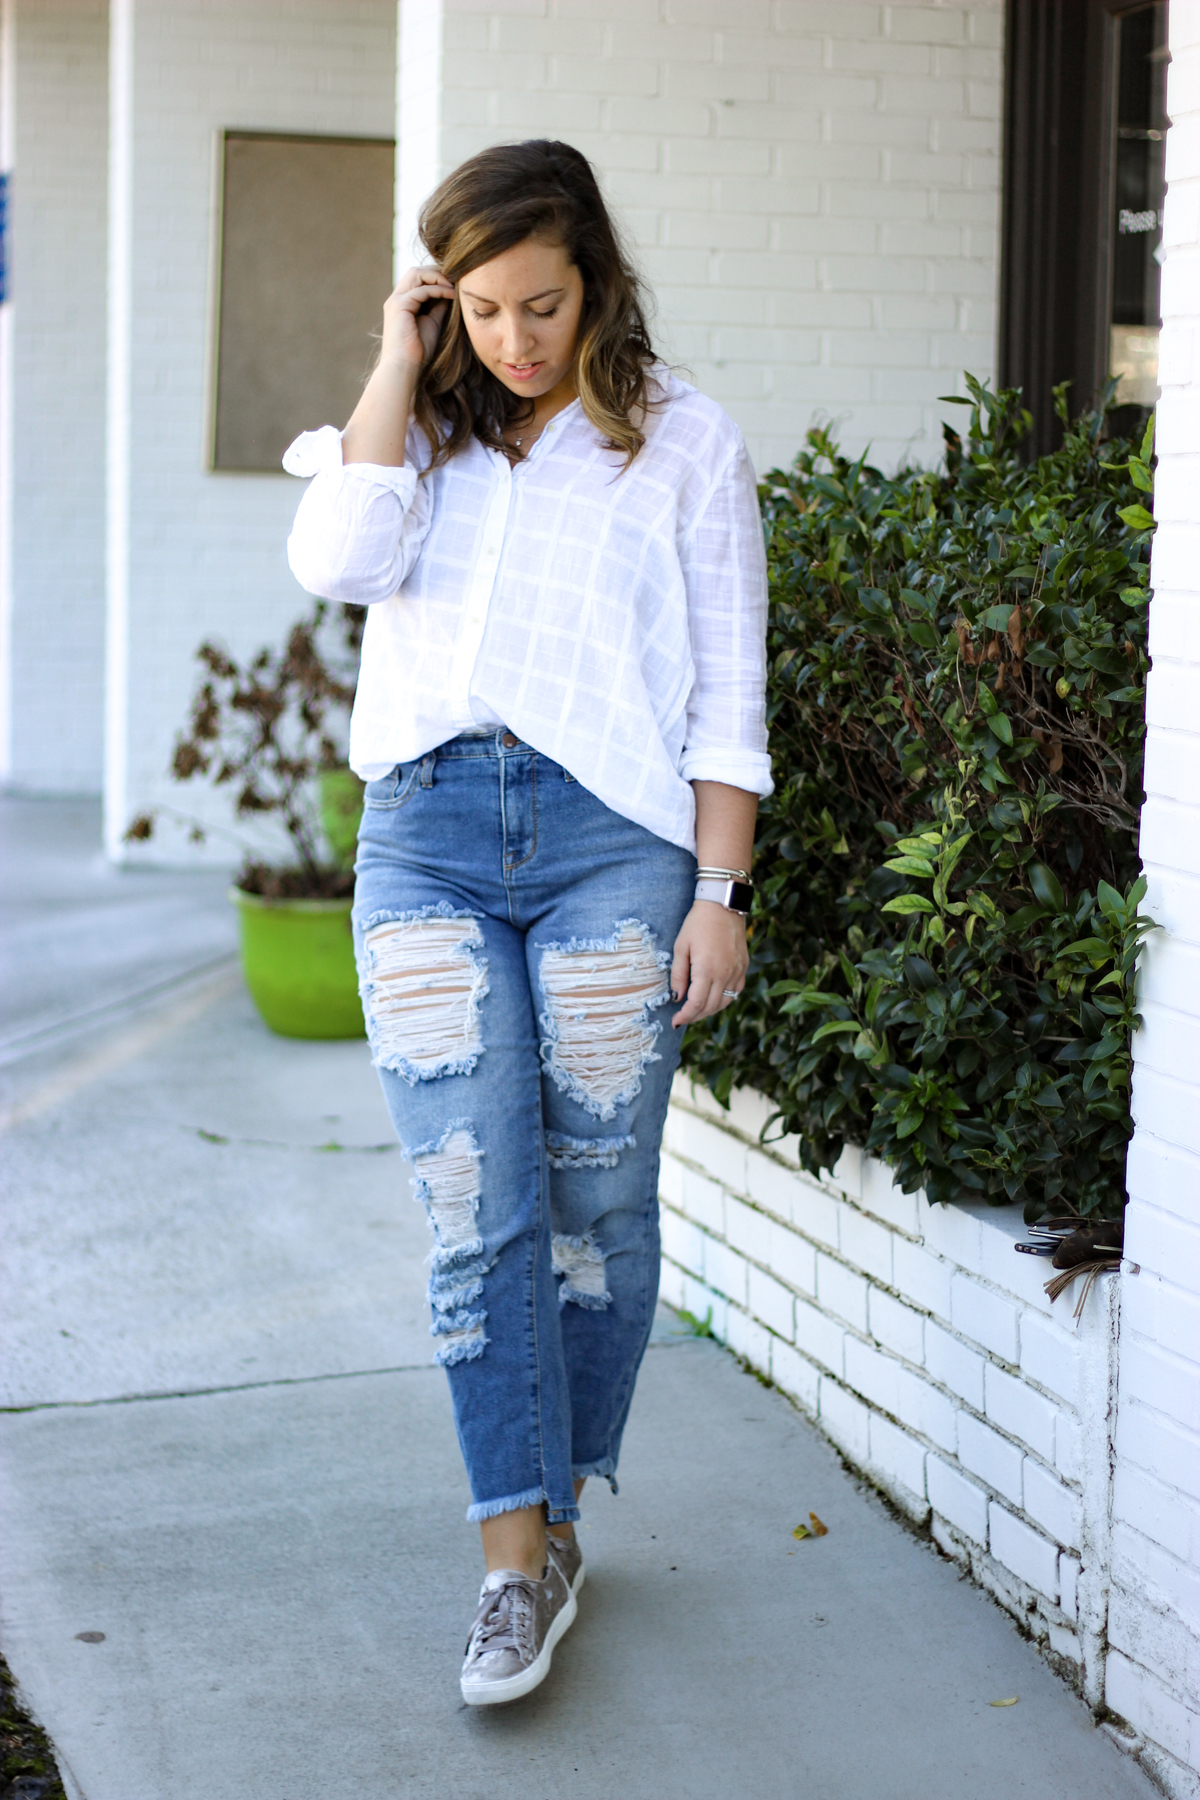 Velvet Sneakers and Boyfriend Jeans | Just Peachy Blog